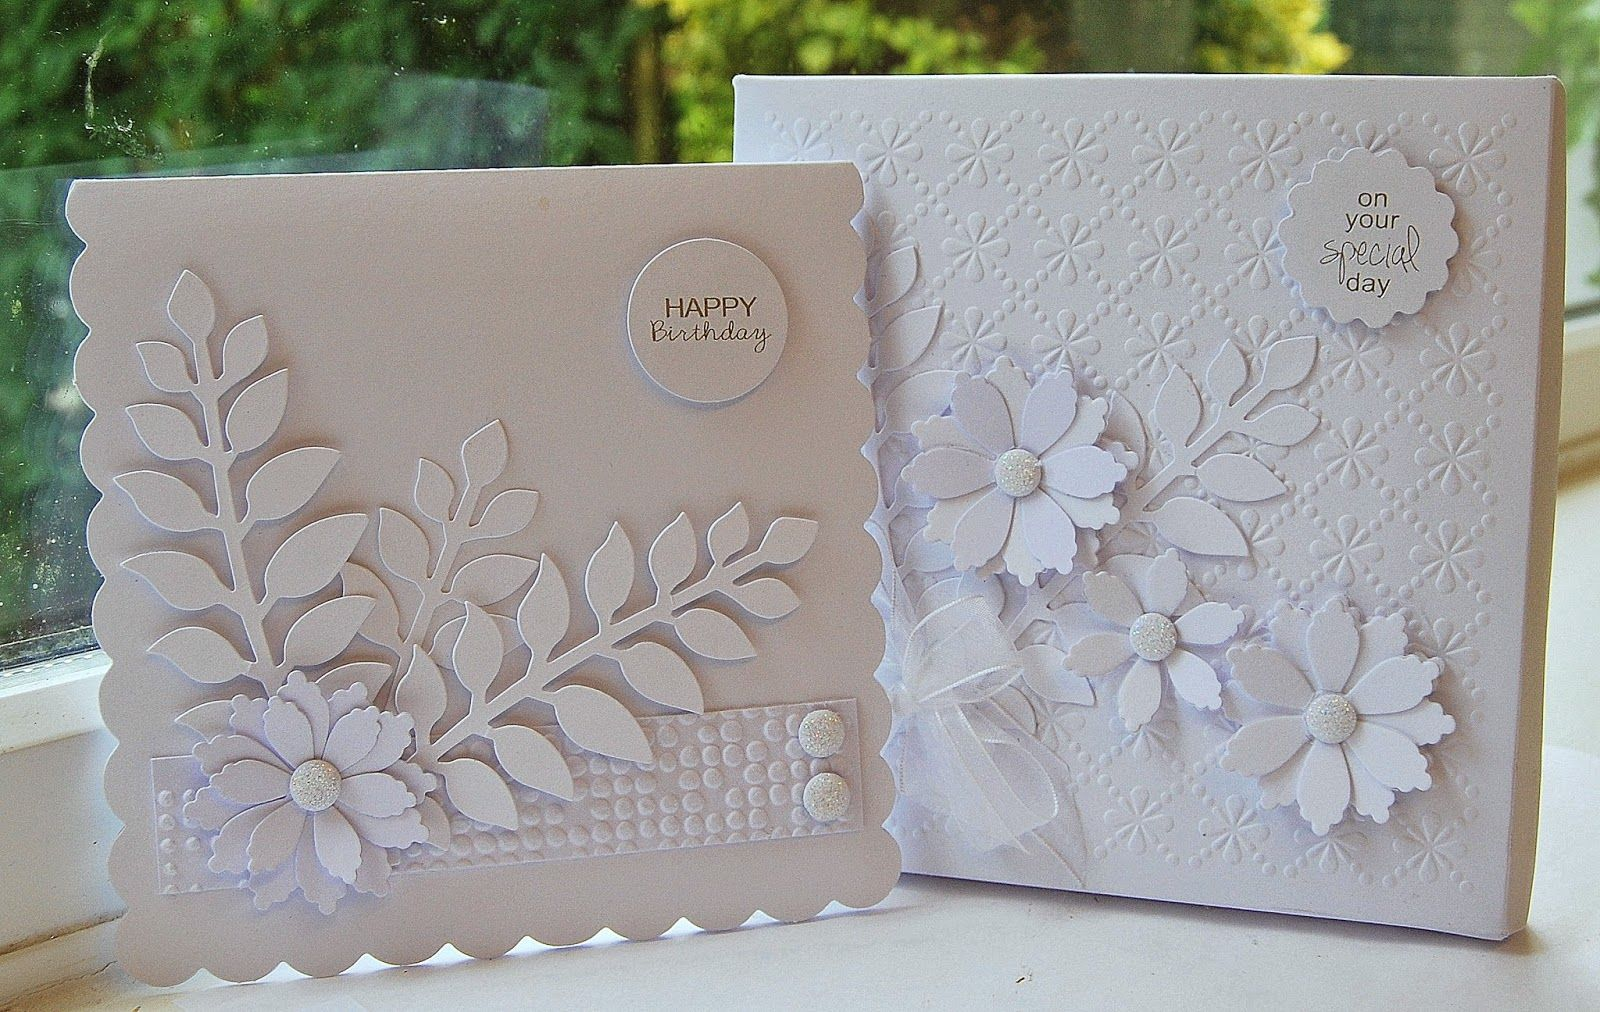 handmade cards from Kath's Blog......diary of the everyday life of a crafter ... white on white ... die cuts ... embossing folder texture and some pre-made embellishments ... delightful!